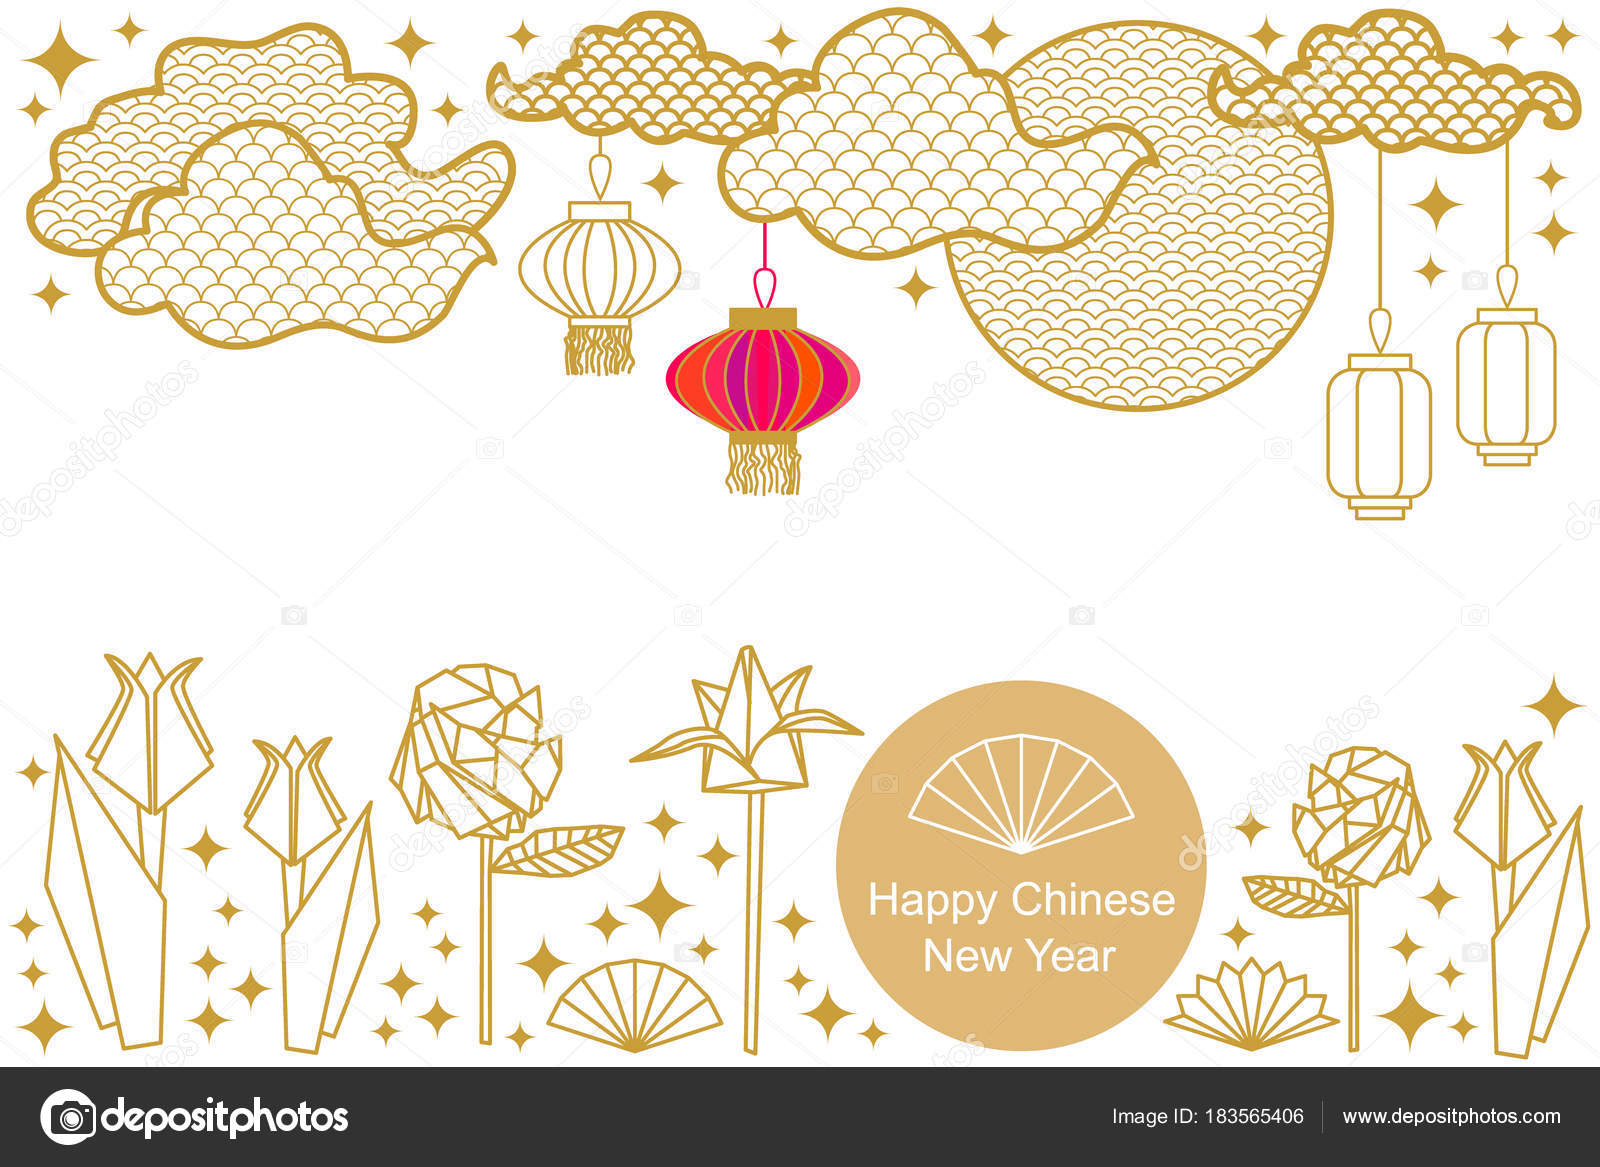 Happy Chinese New Year card. Colorful abstract ornate circles ...